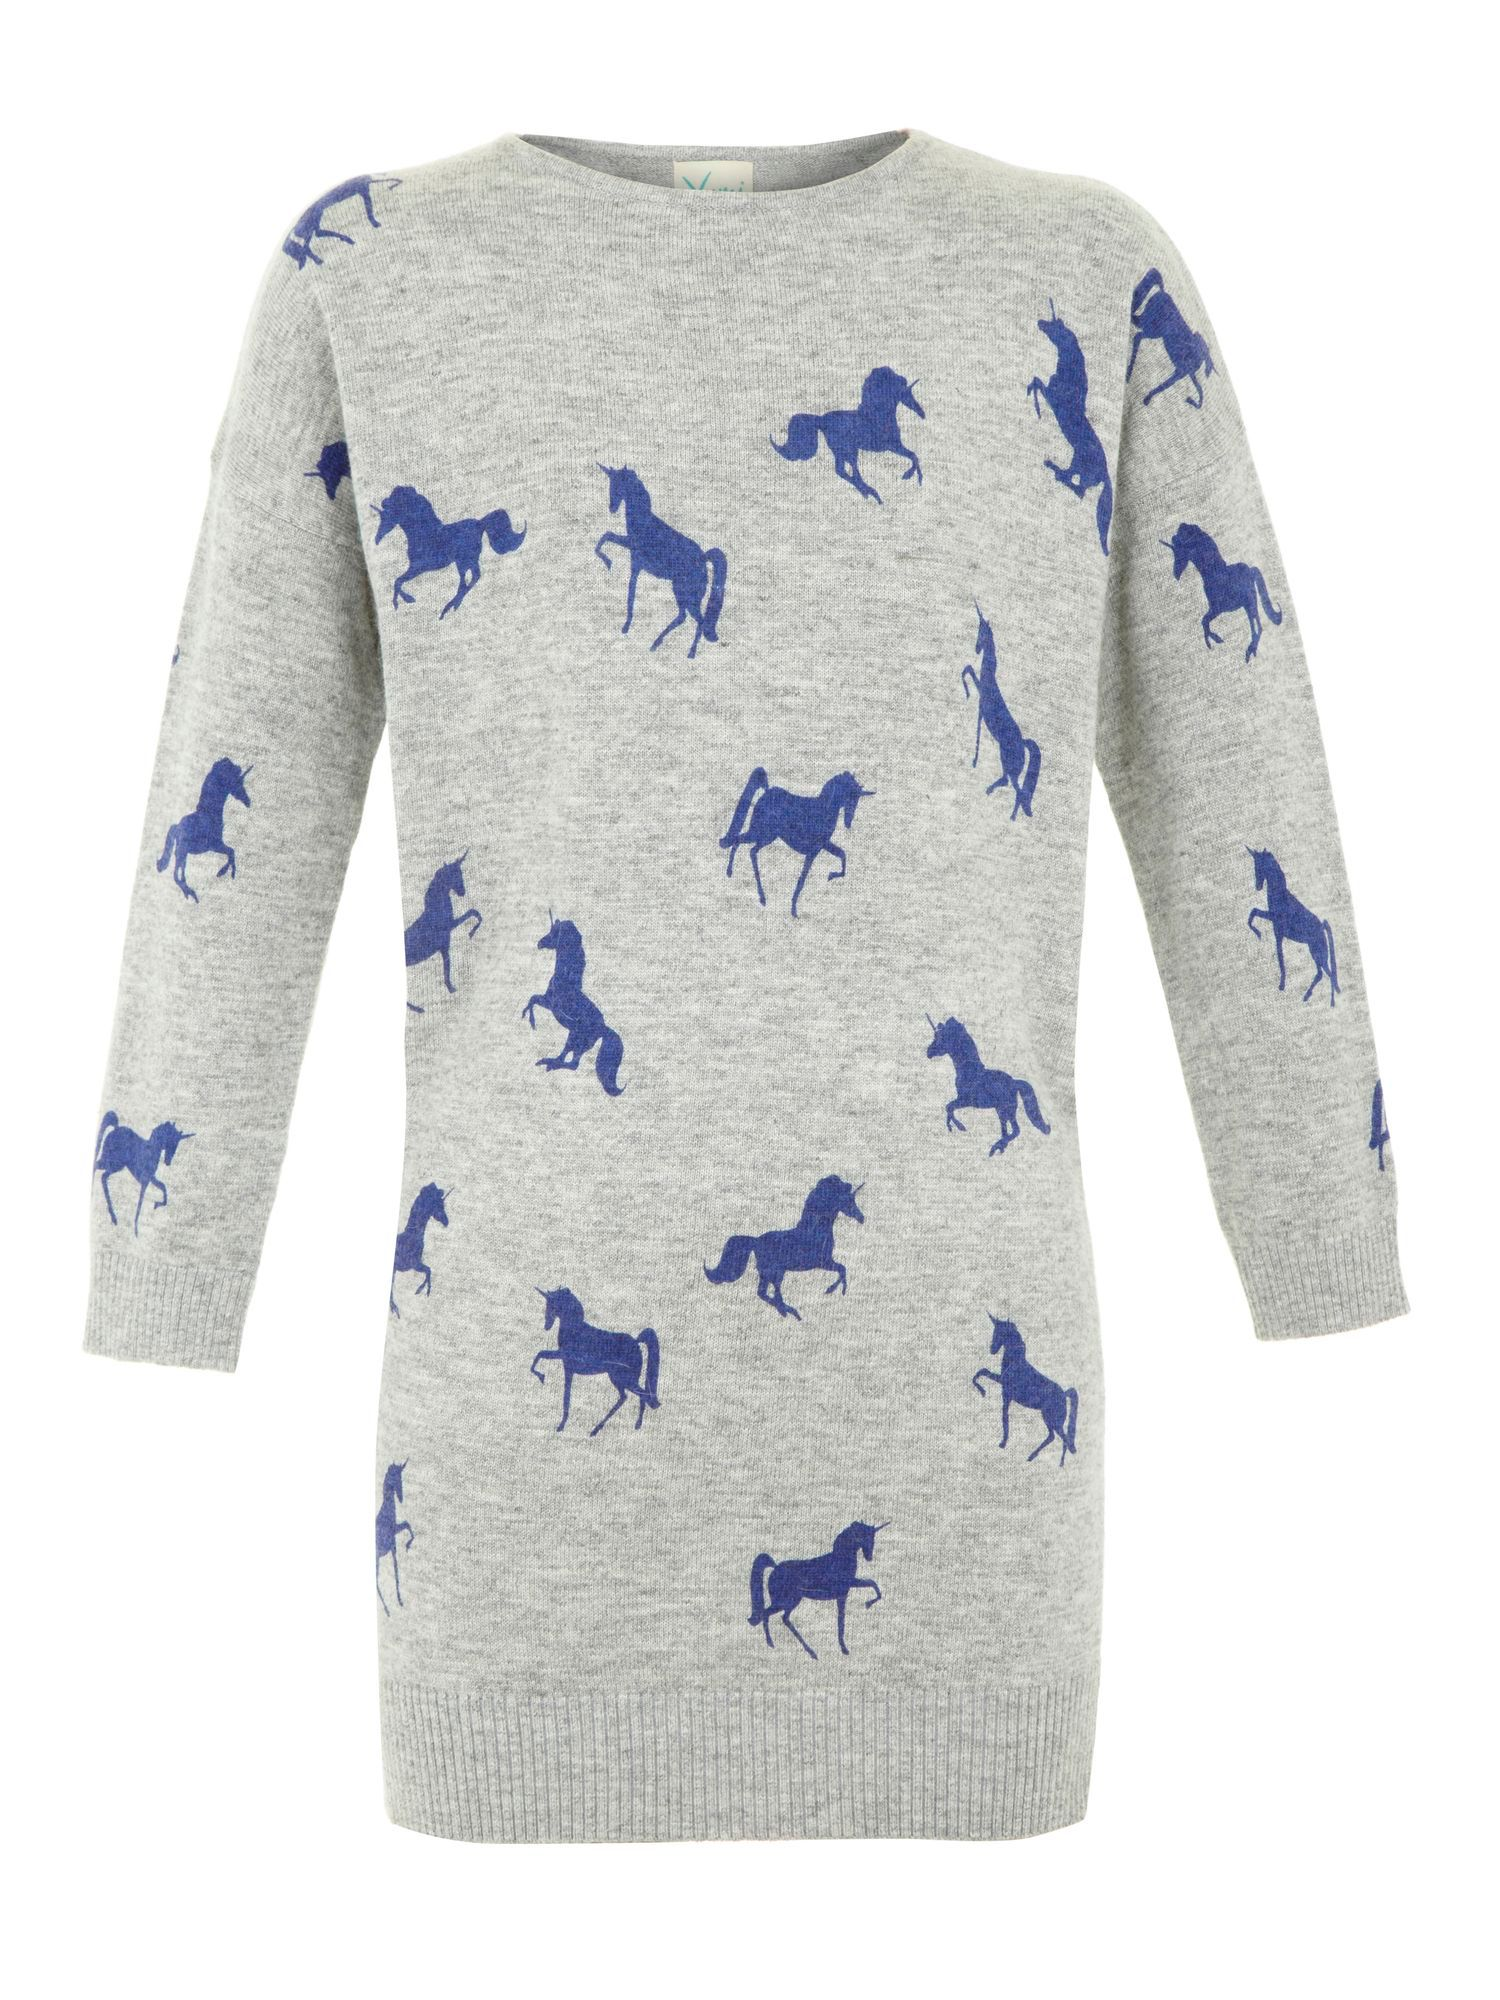 Girls space unicorn jumper dress